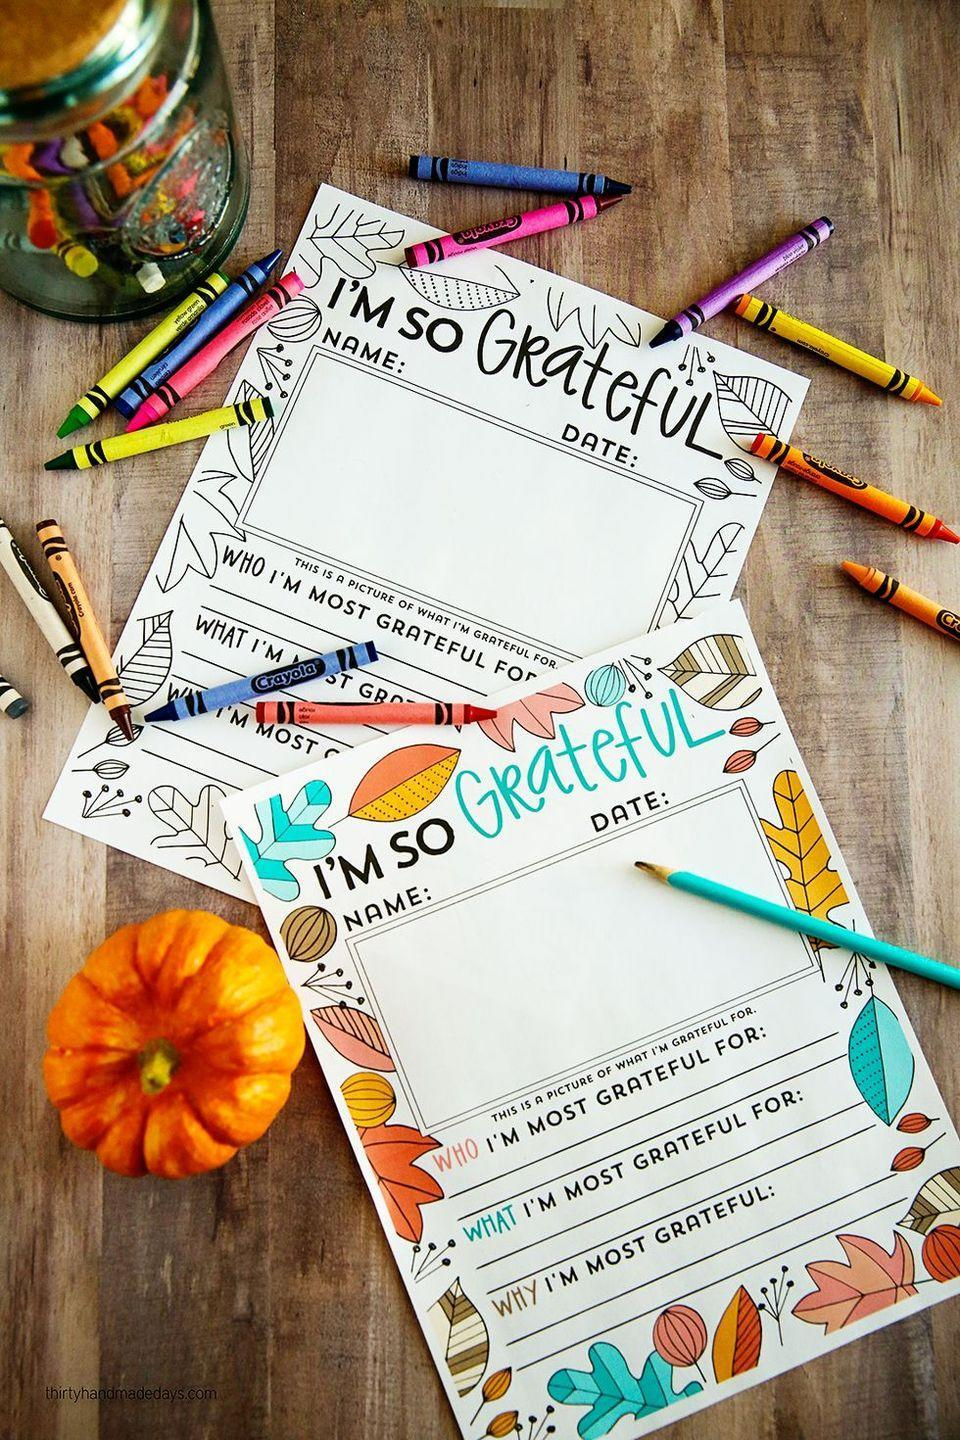 "<p>Feeling frazzled? Coloring sheets to the rescue! These printables are one-part placemat, one-part coloring sheet, and one-part thoughtful gratitude activity.</p><p><strong>Get the tutorial at <a href=""https://www.thirtyhandmadedays.com/updated-thanksgiving-printable/"" rel=""nofollow noopener"" target=""_blank"" data-ylk=""slk:Thirty Handmade Days"" class=""link rapid-noclick-resp"">Thirty Handmade Days</a>.</strong></p><p><strong><a class=""link rapid-noclick-resp"" href=""https://www.amazon.com/Crayola-Erasable-Coloring-Essentials-Stocking/dp/B07D2X22RM?tag=syn-yahoo-20&ascsubtag=%5Bartid%7C10050.g.1201%5Bsrc%7Cyahoo-us"" rel=""nofollow noopener"" target=""_blank"" data-ylk=""slk:SHOP ERASABLE COLORED PENCILS"">SHOP ERASABLE COLORED PENCILS</a><br></strong></p>"